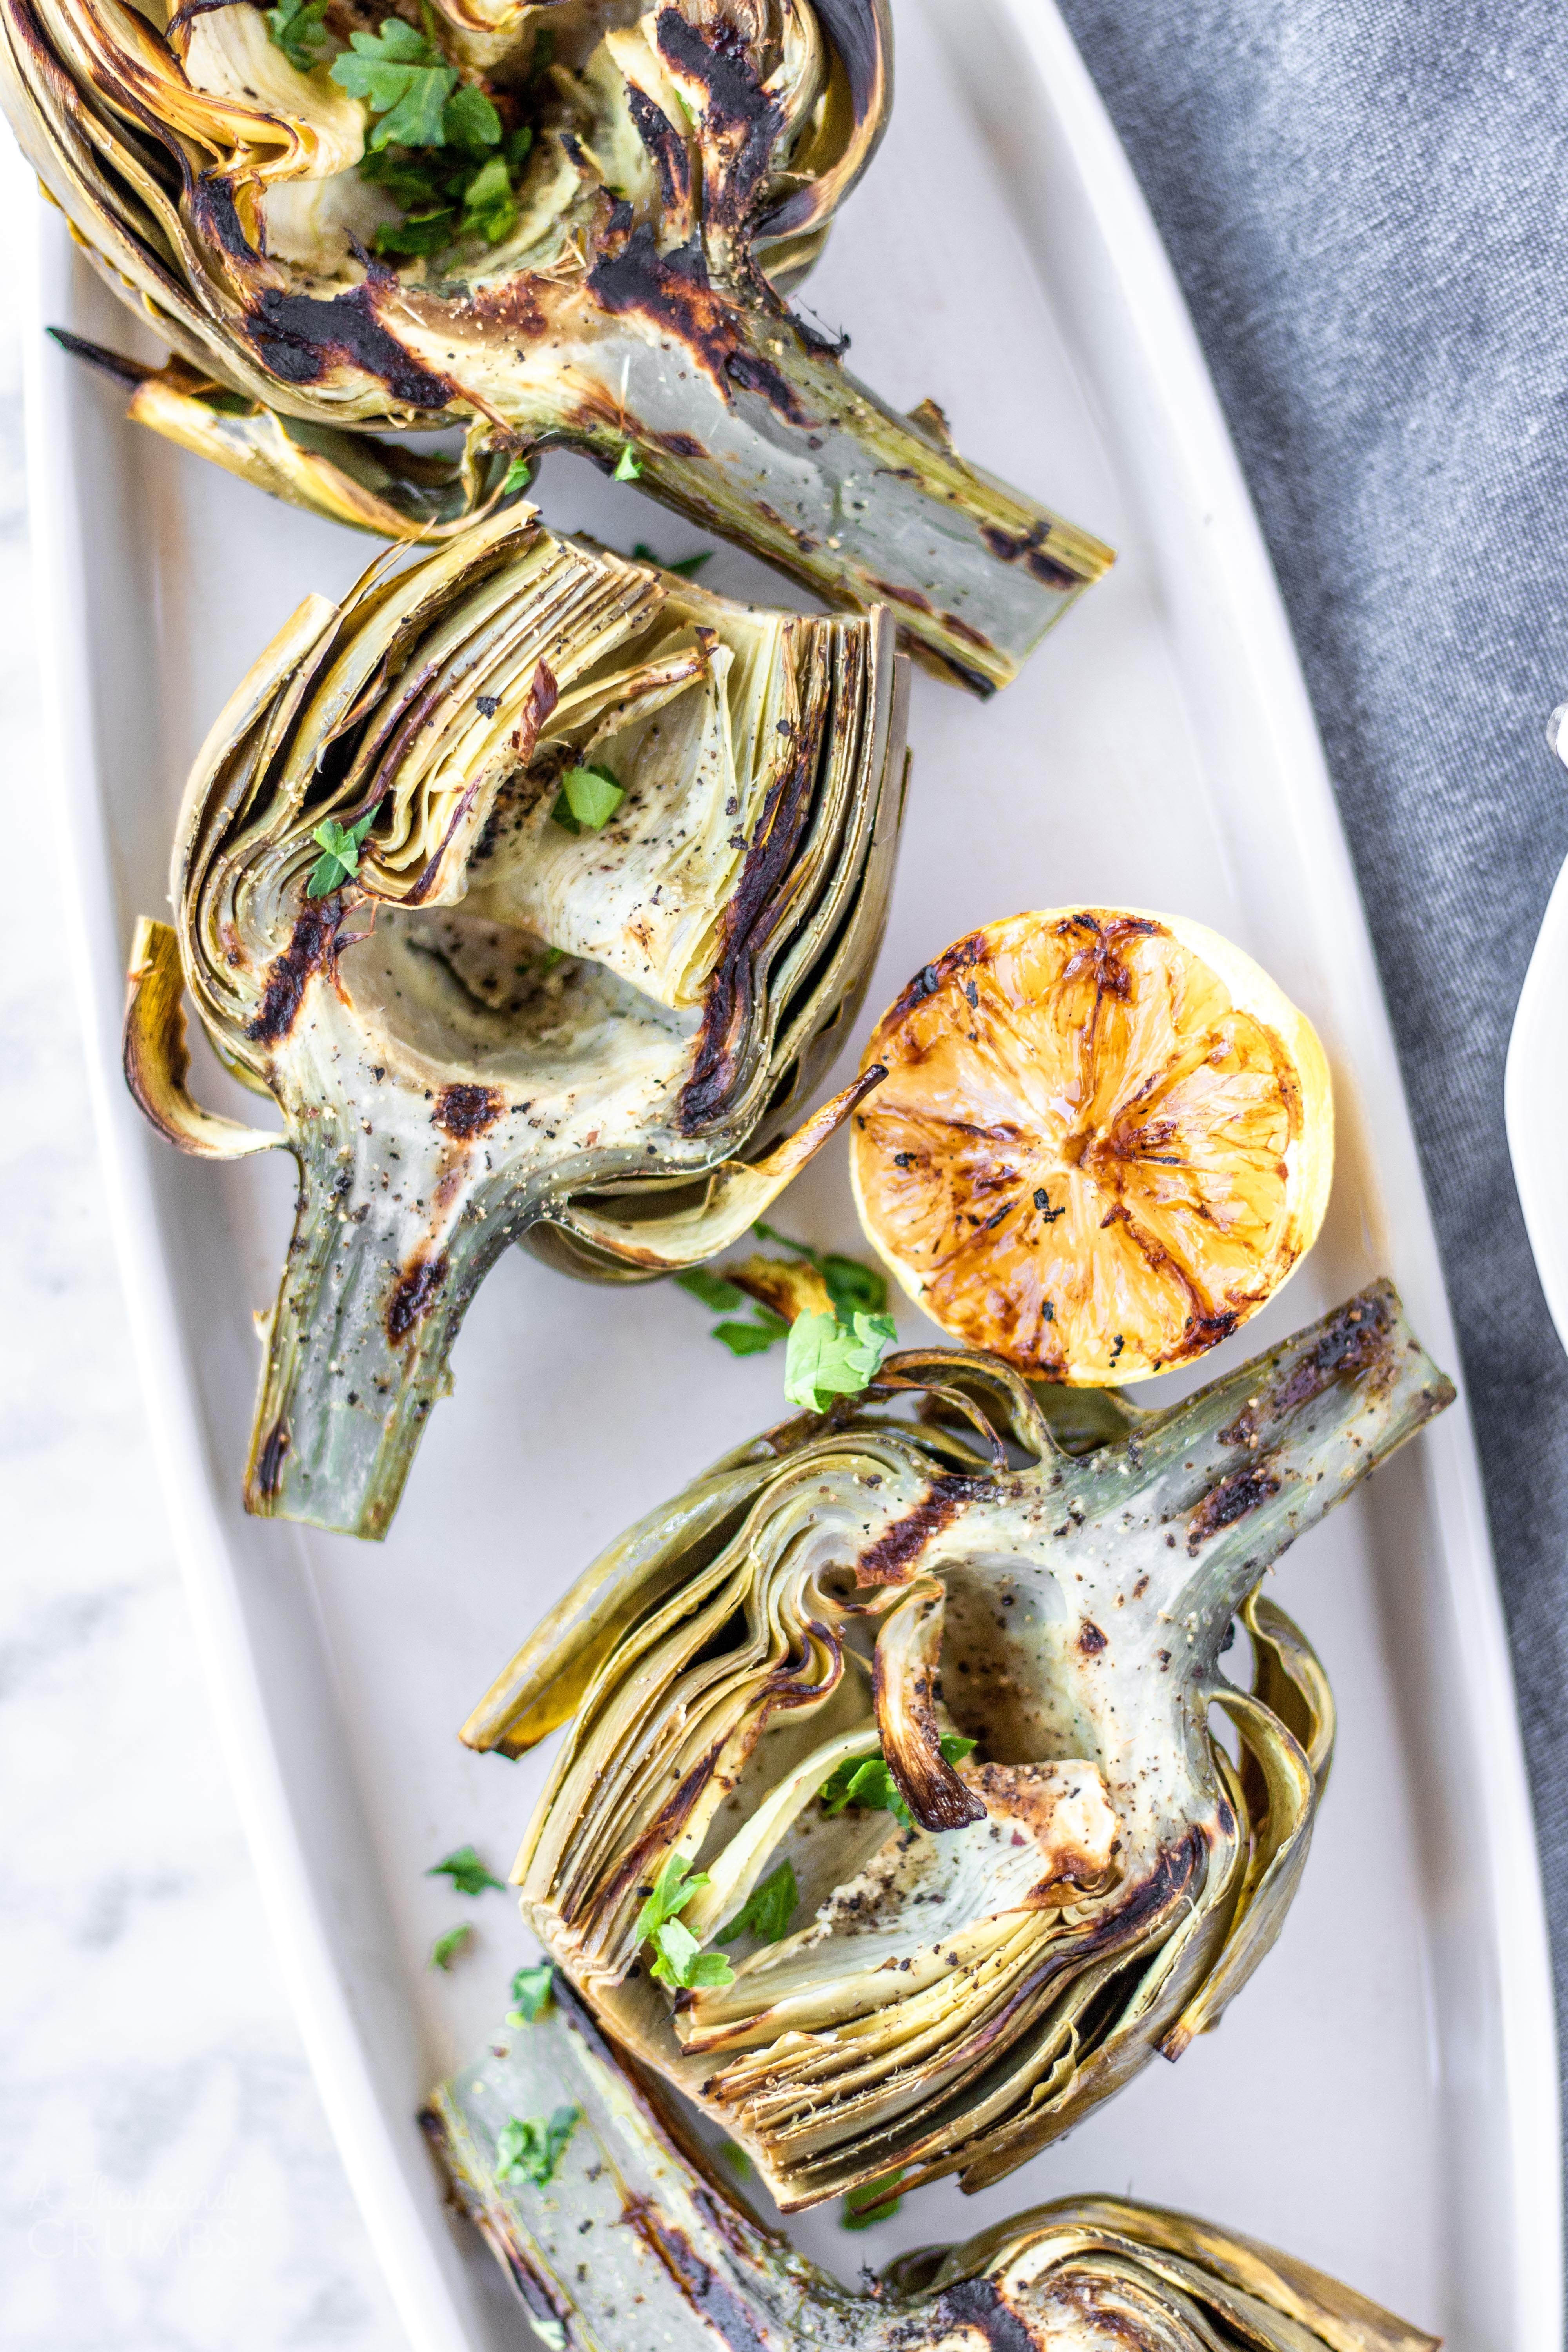 Grilled Artichokes With Lemon Aioli A Thousand Crumbs